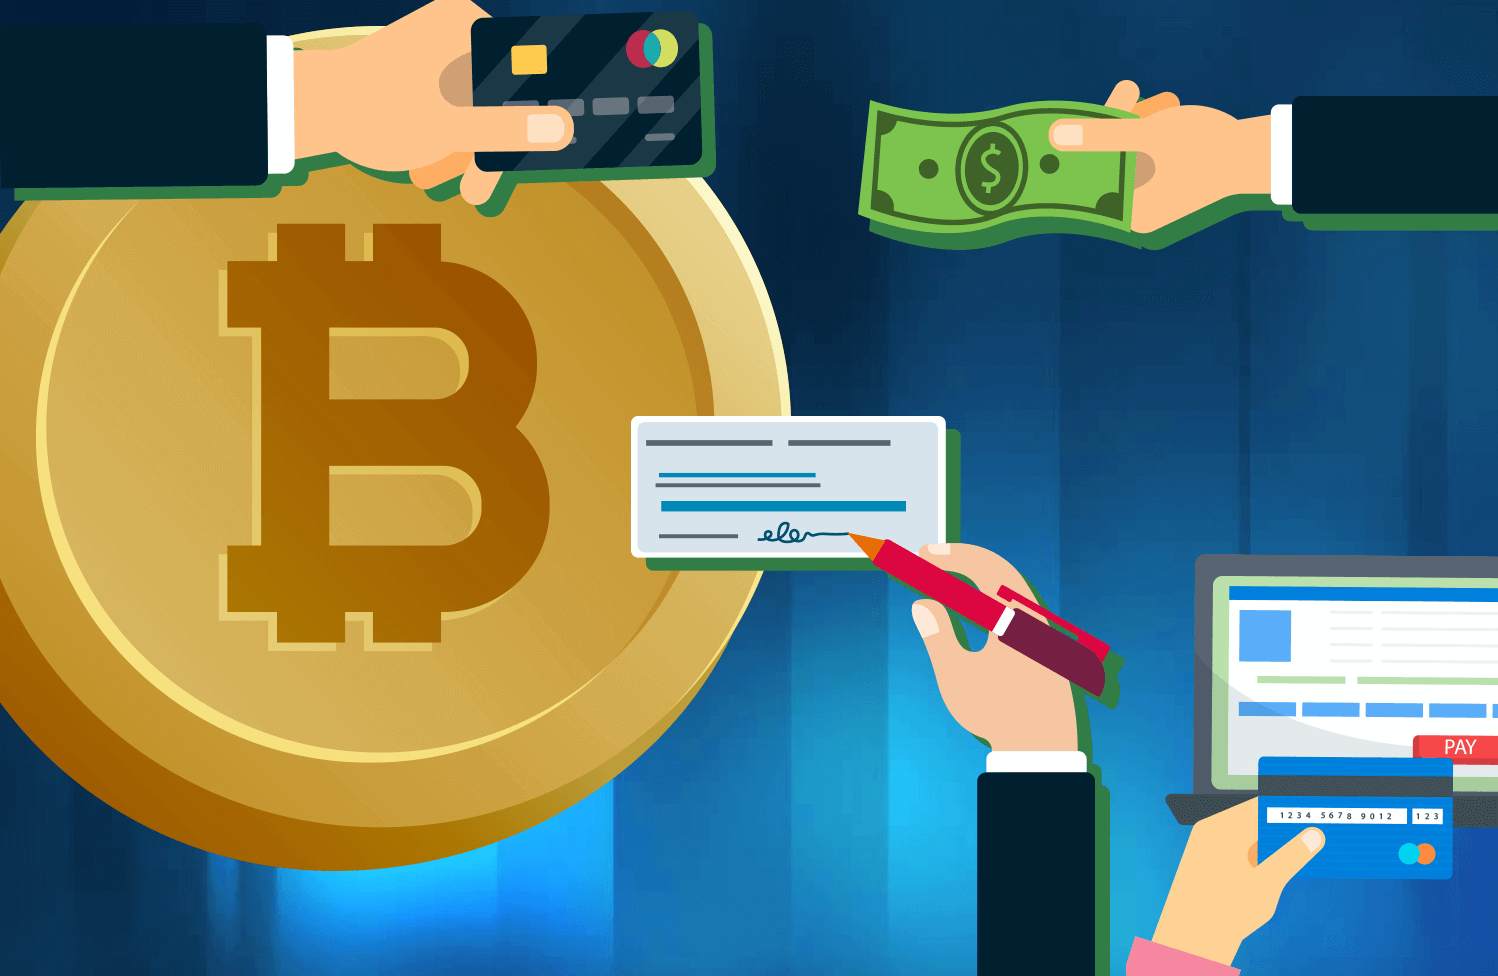 Guide to Buy Bitcoins with Credit/Debit Card Without Verification